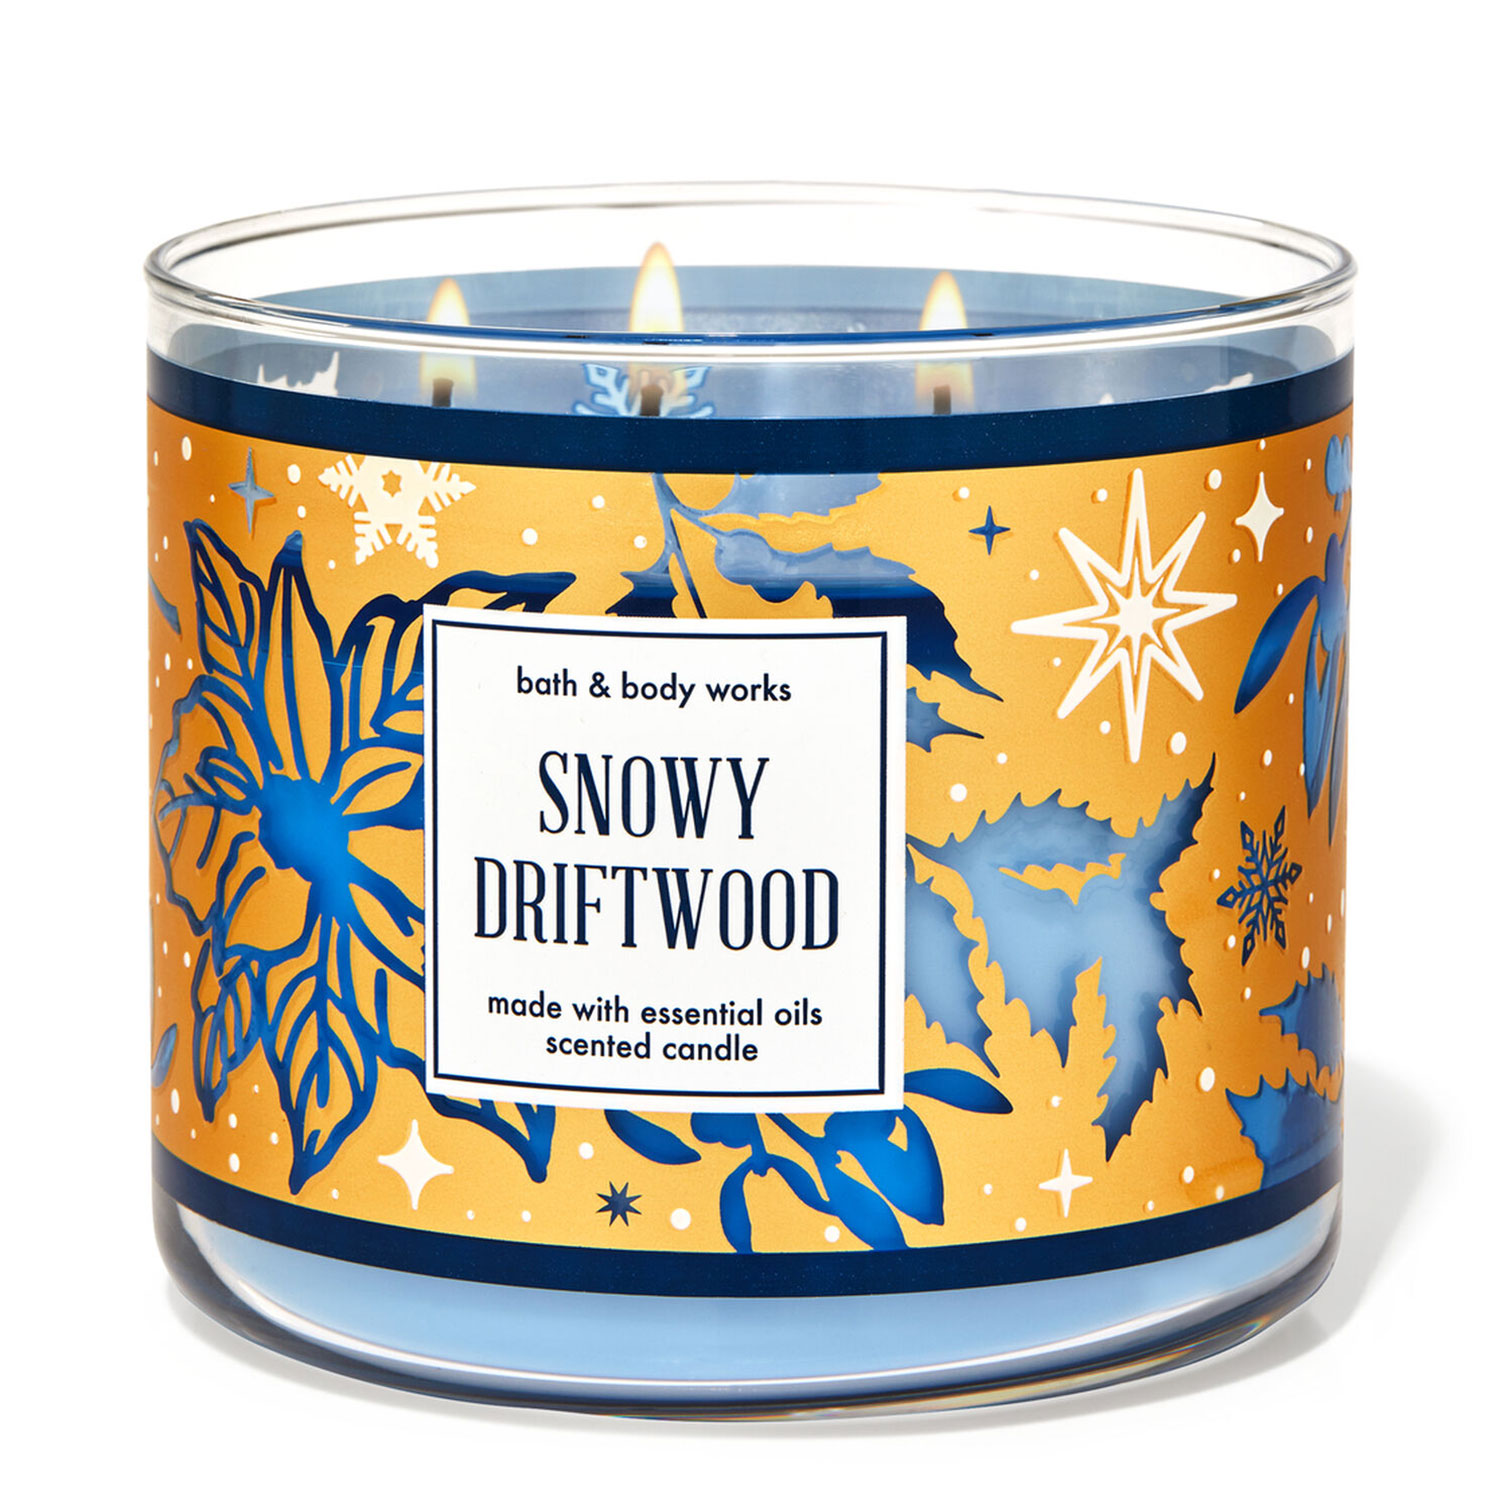 Snowy Driftwood 3-Wick Candle